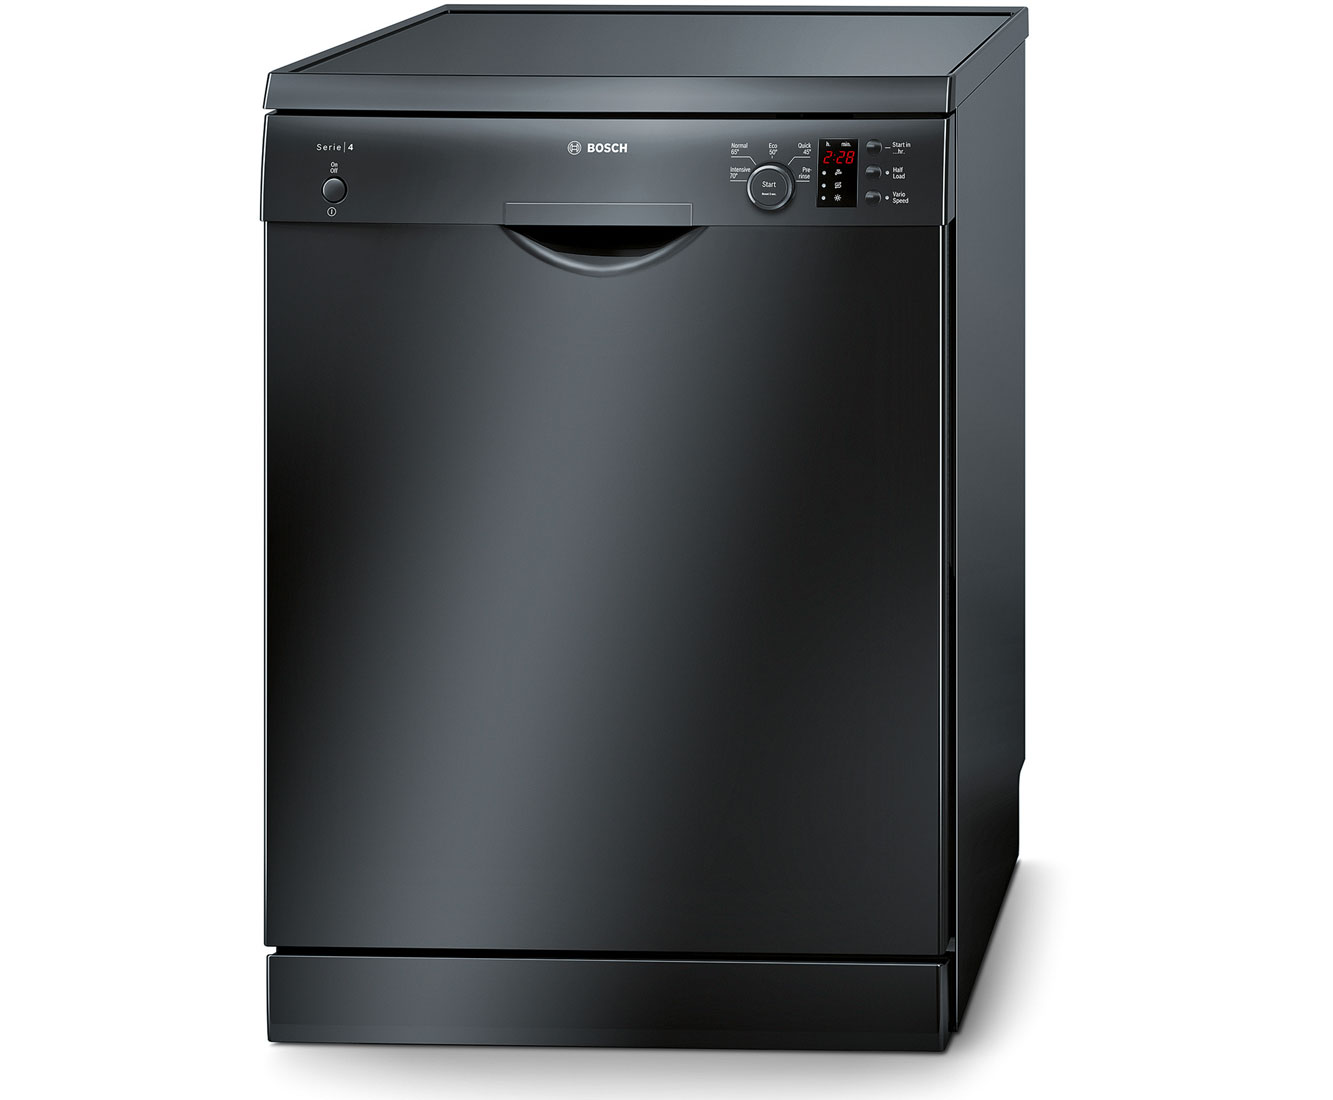 Bosch Serie 4 SMS50C26UK Standard Dishwasher - Black